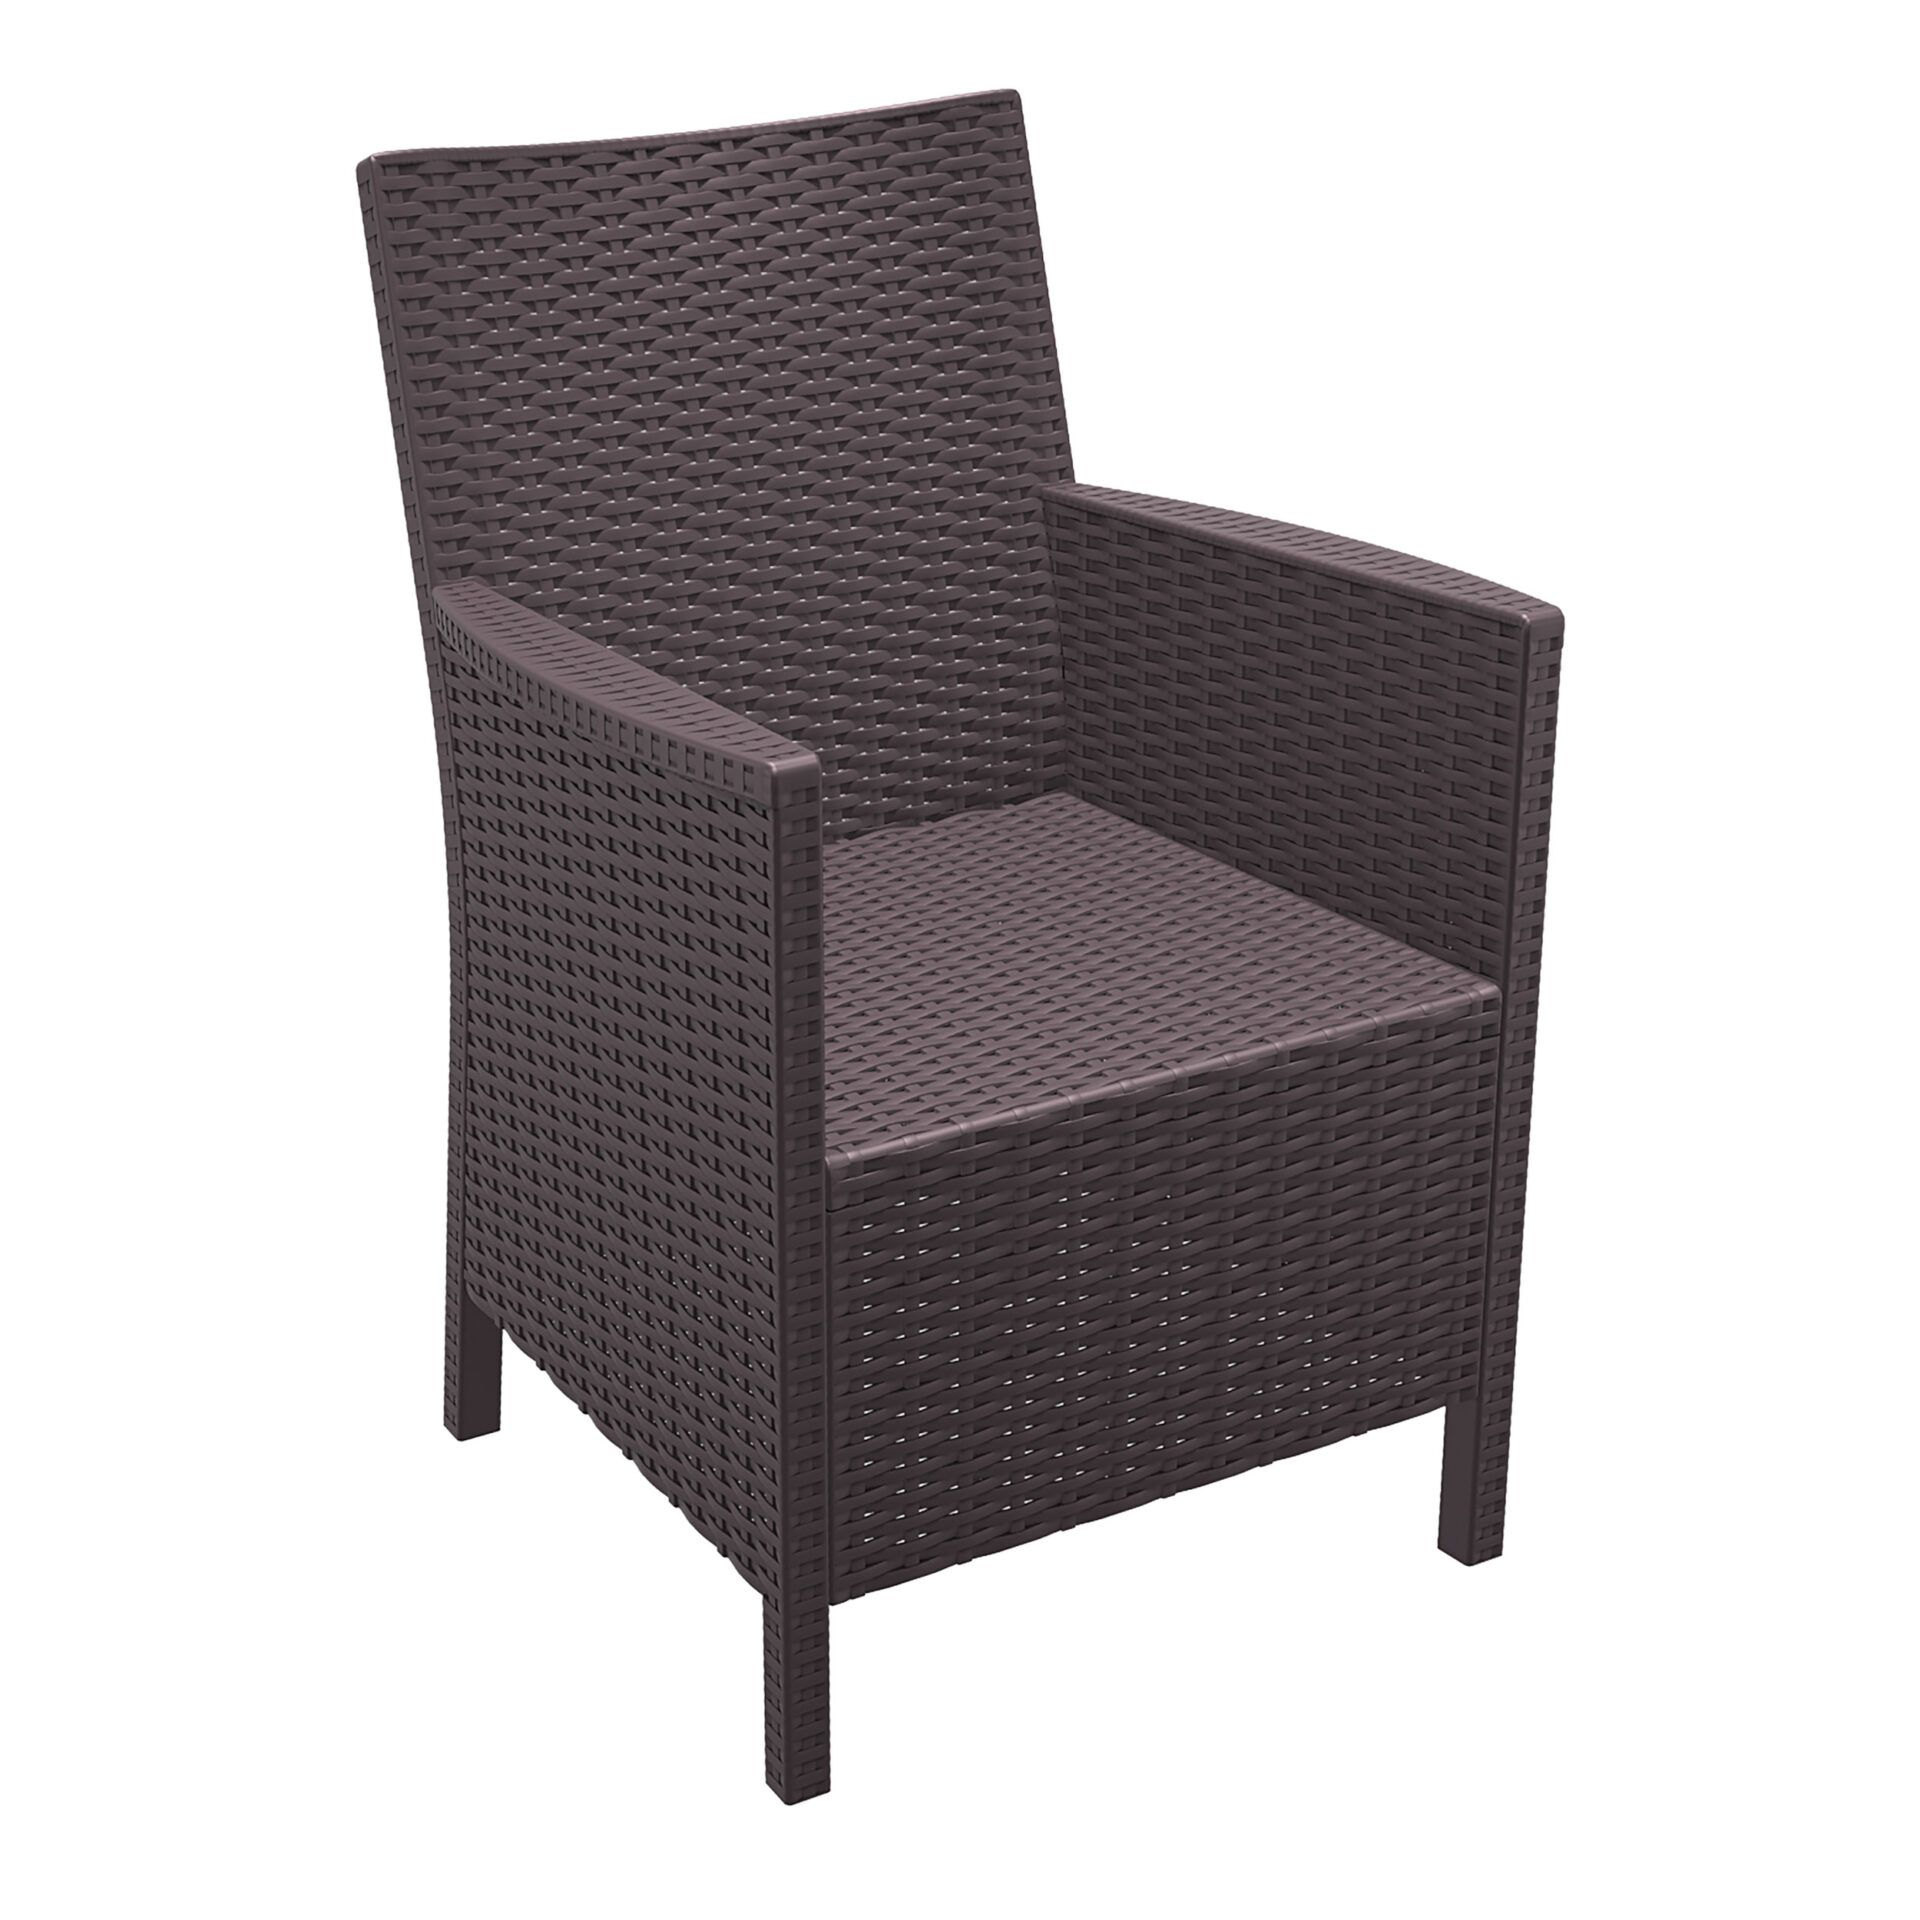 resin rattan california tub chair brown front side